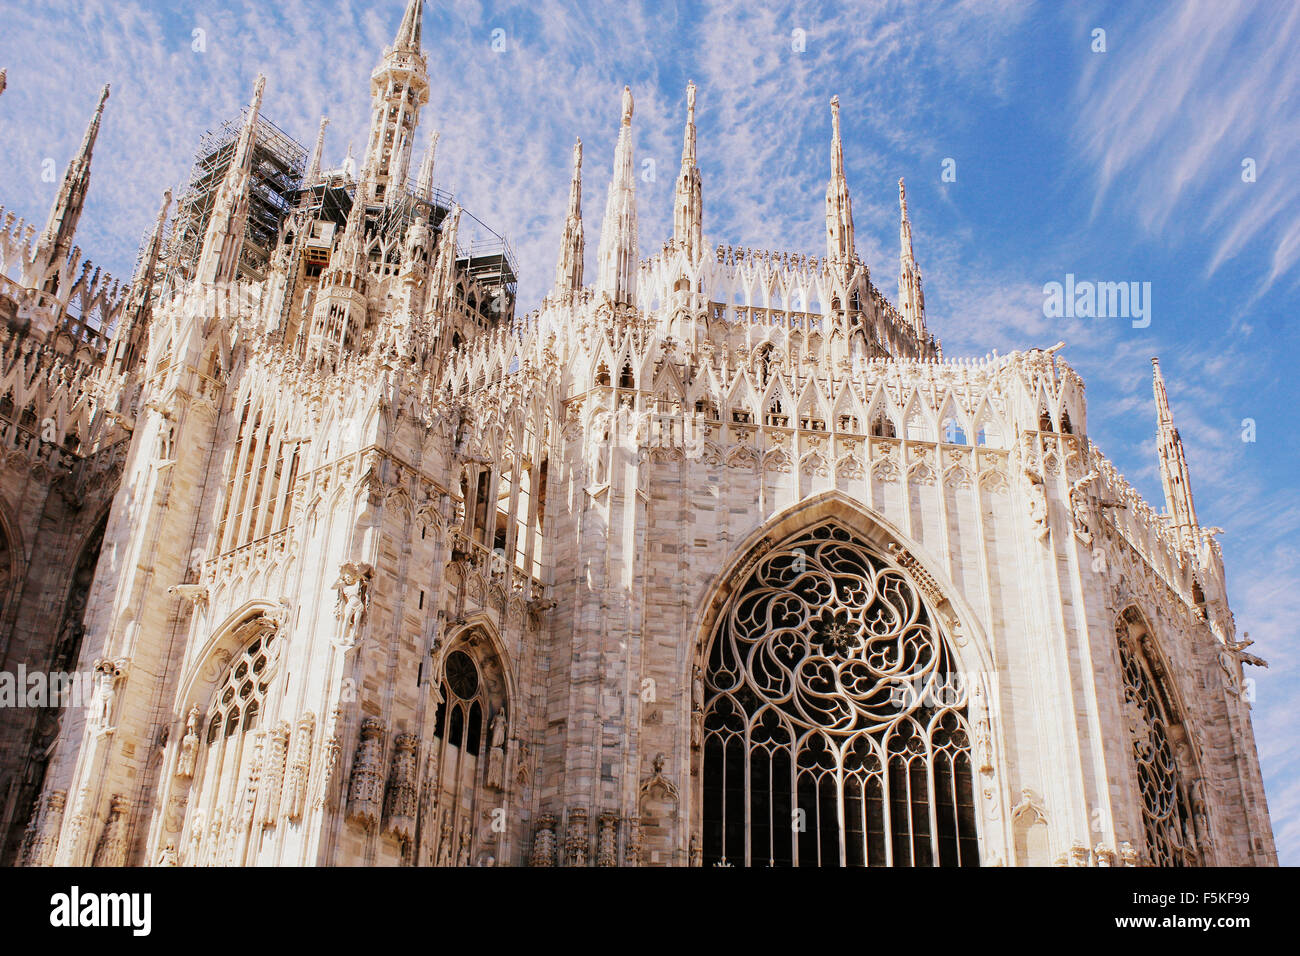 Cathedral Duomo di Milano in Milan, Italy - Stock Image